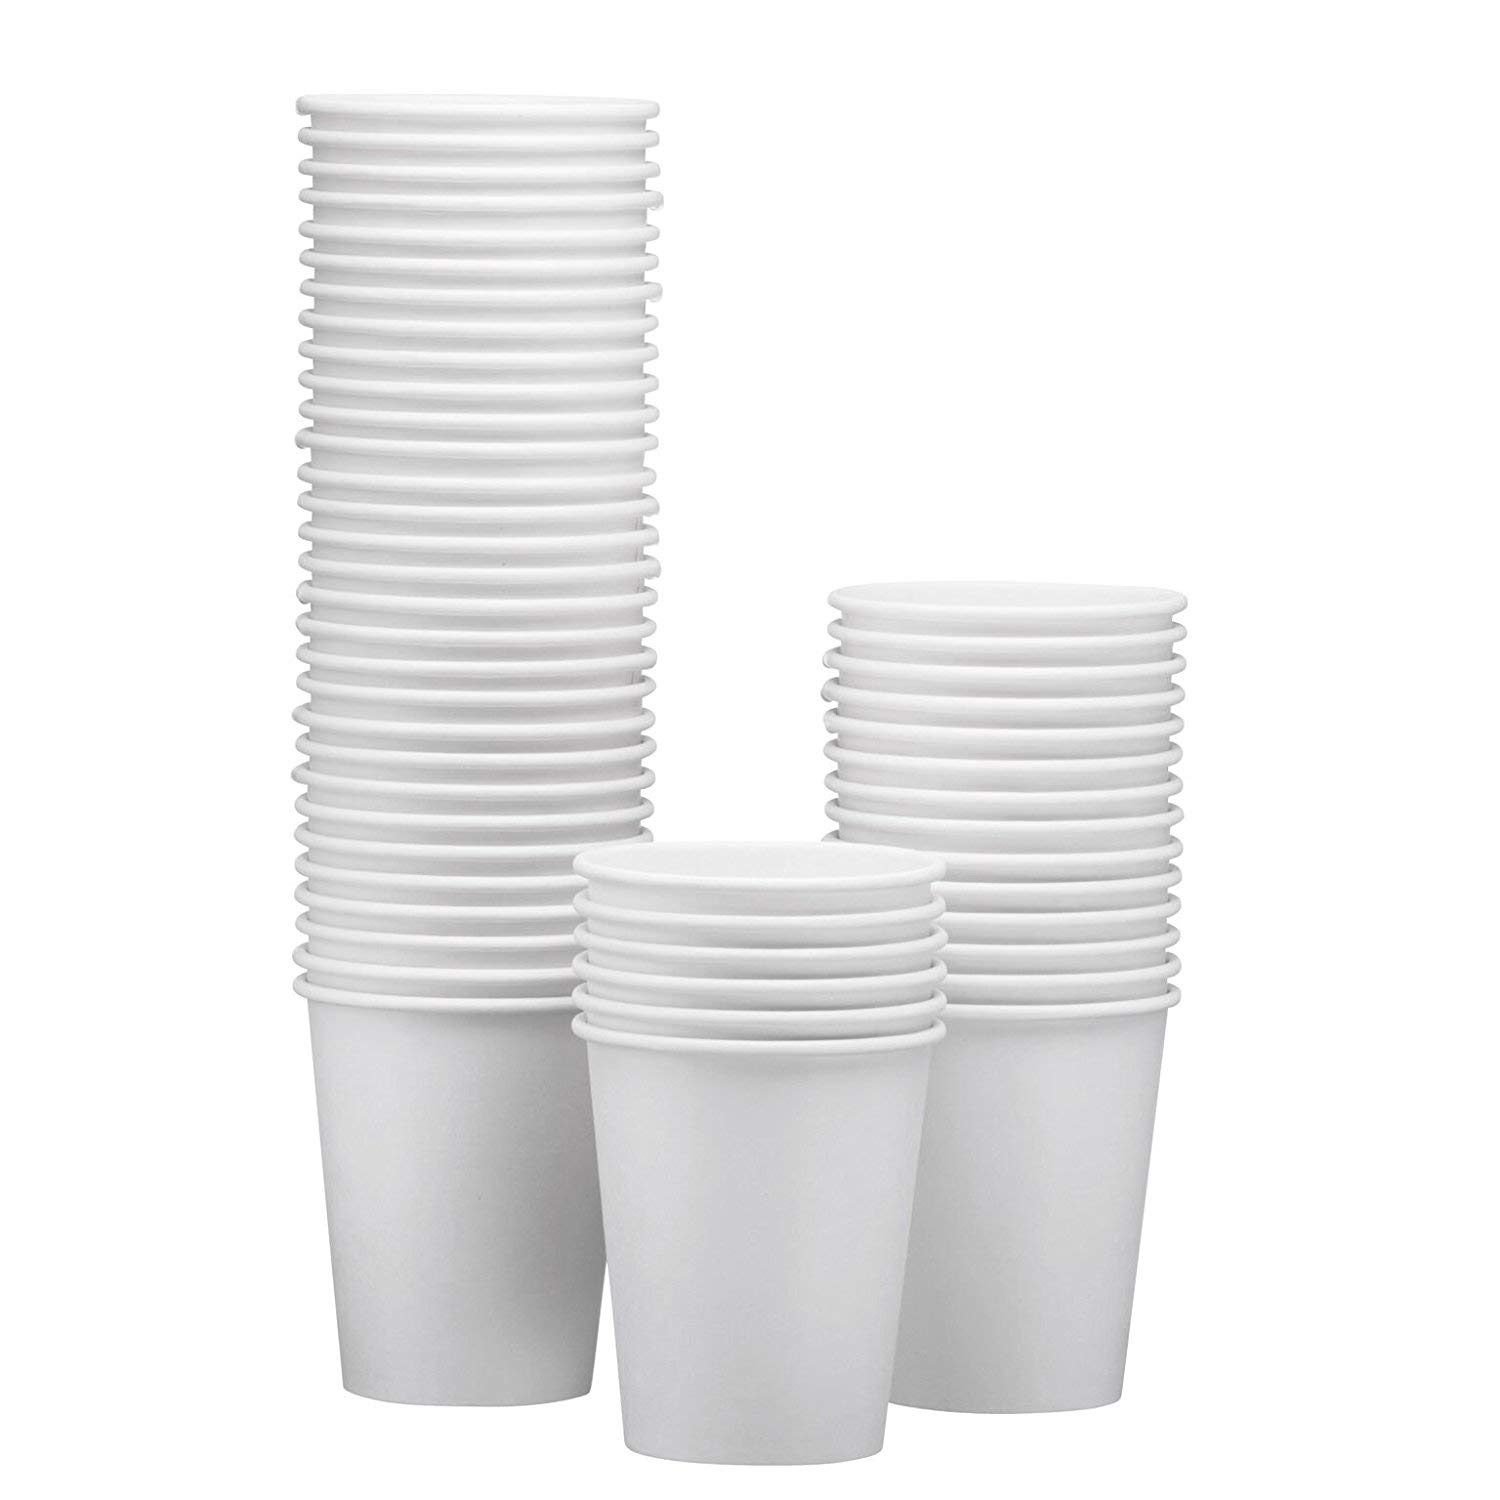 NYHI Disposable & Reusable Paper Espresso Cups – White - For Hot/Cold Coffee, Tea & Chocolate, Water, Beverages – Pack Of 50 - Extra Thick And Sturdy With Rolled Rim Made In USA (10 Ounce)